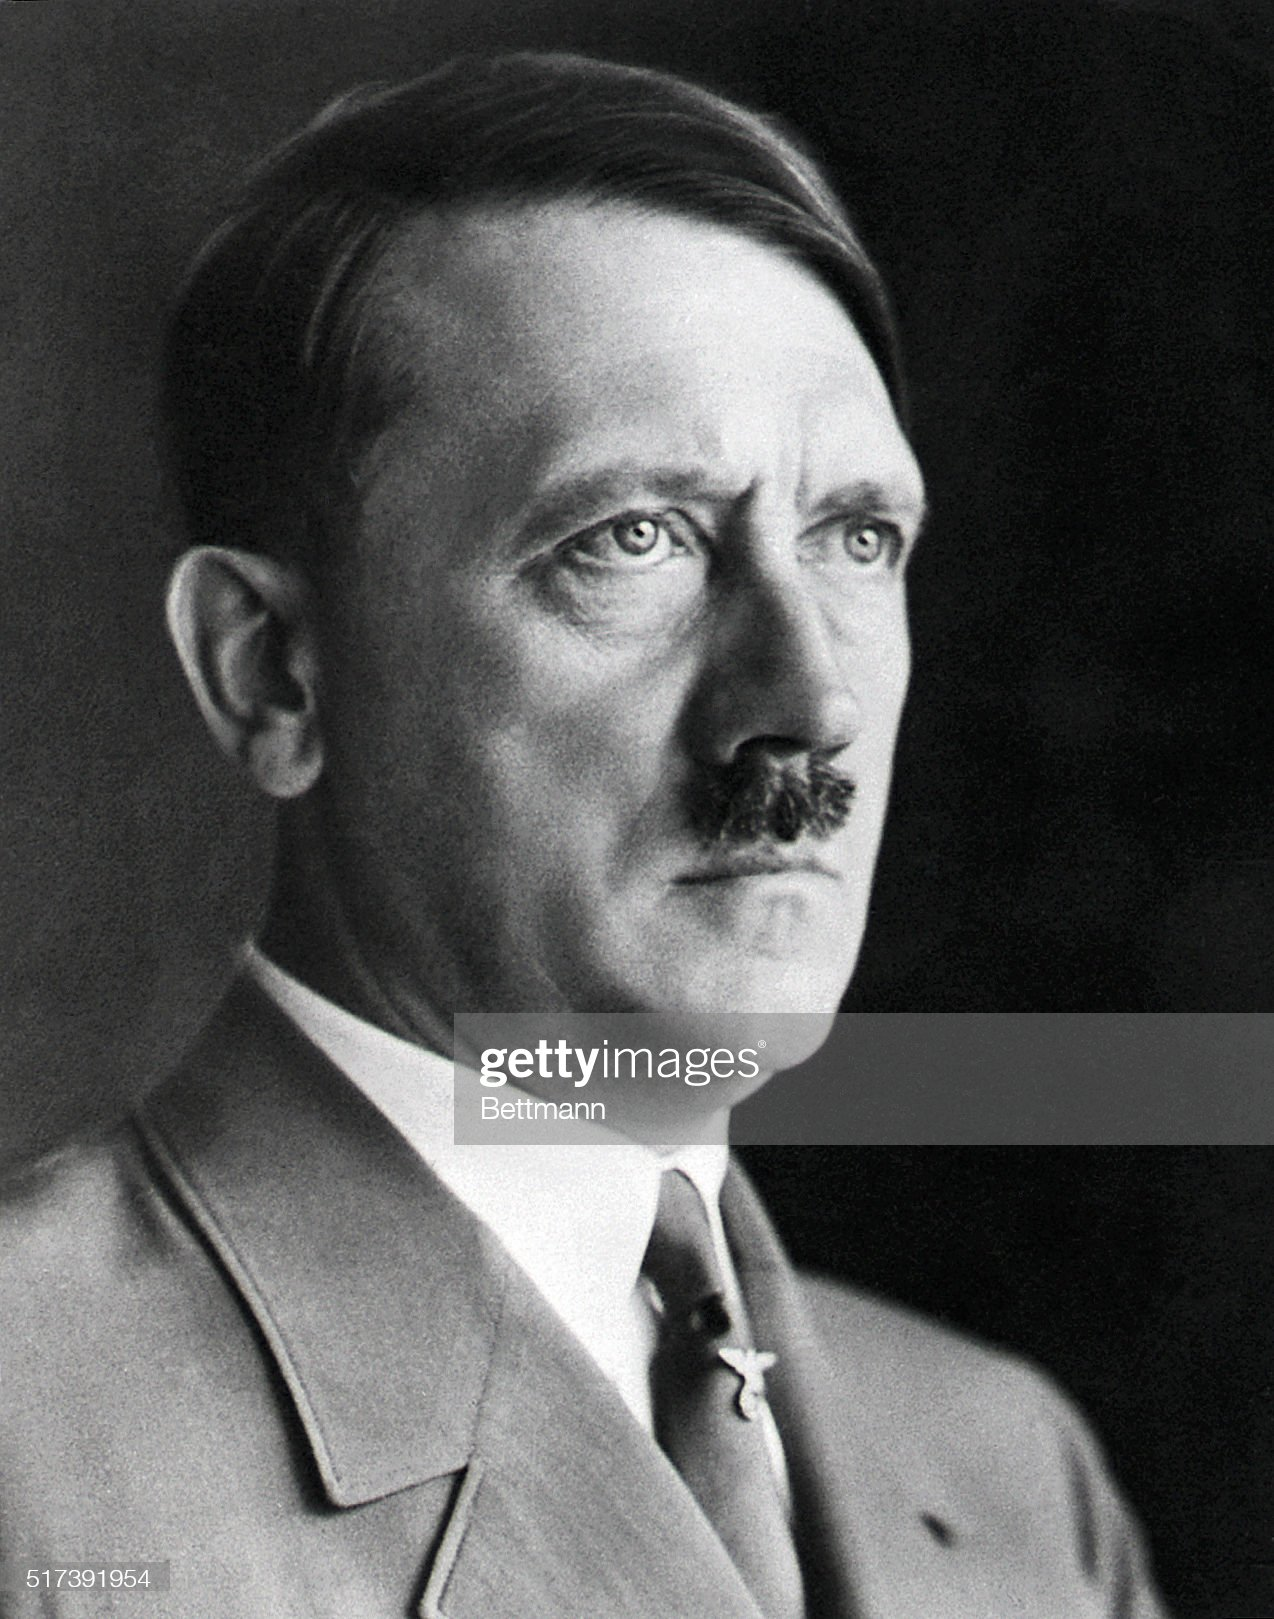 ¿Cuánto mide Adolf Hitler? - Altura - Real height German-dictator-adolf-hitler-in-military-uniform-picture-id517391954?s=2048x2048